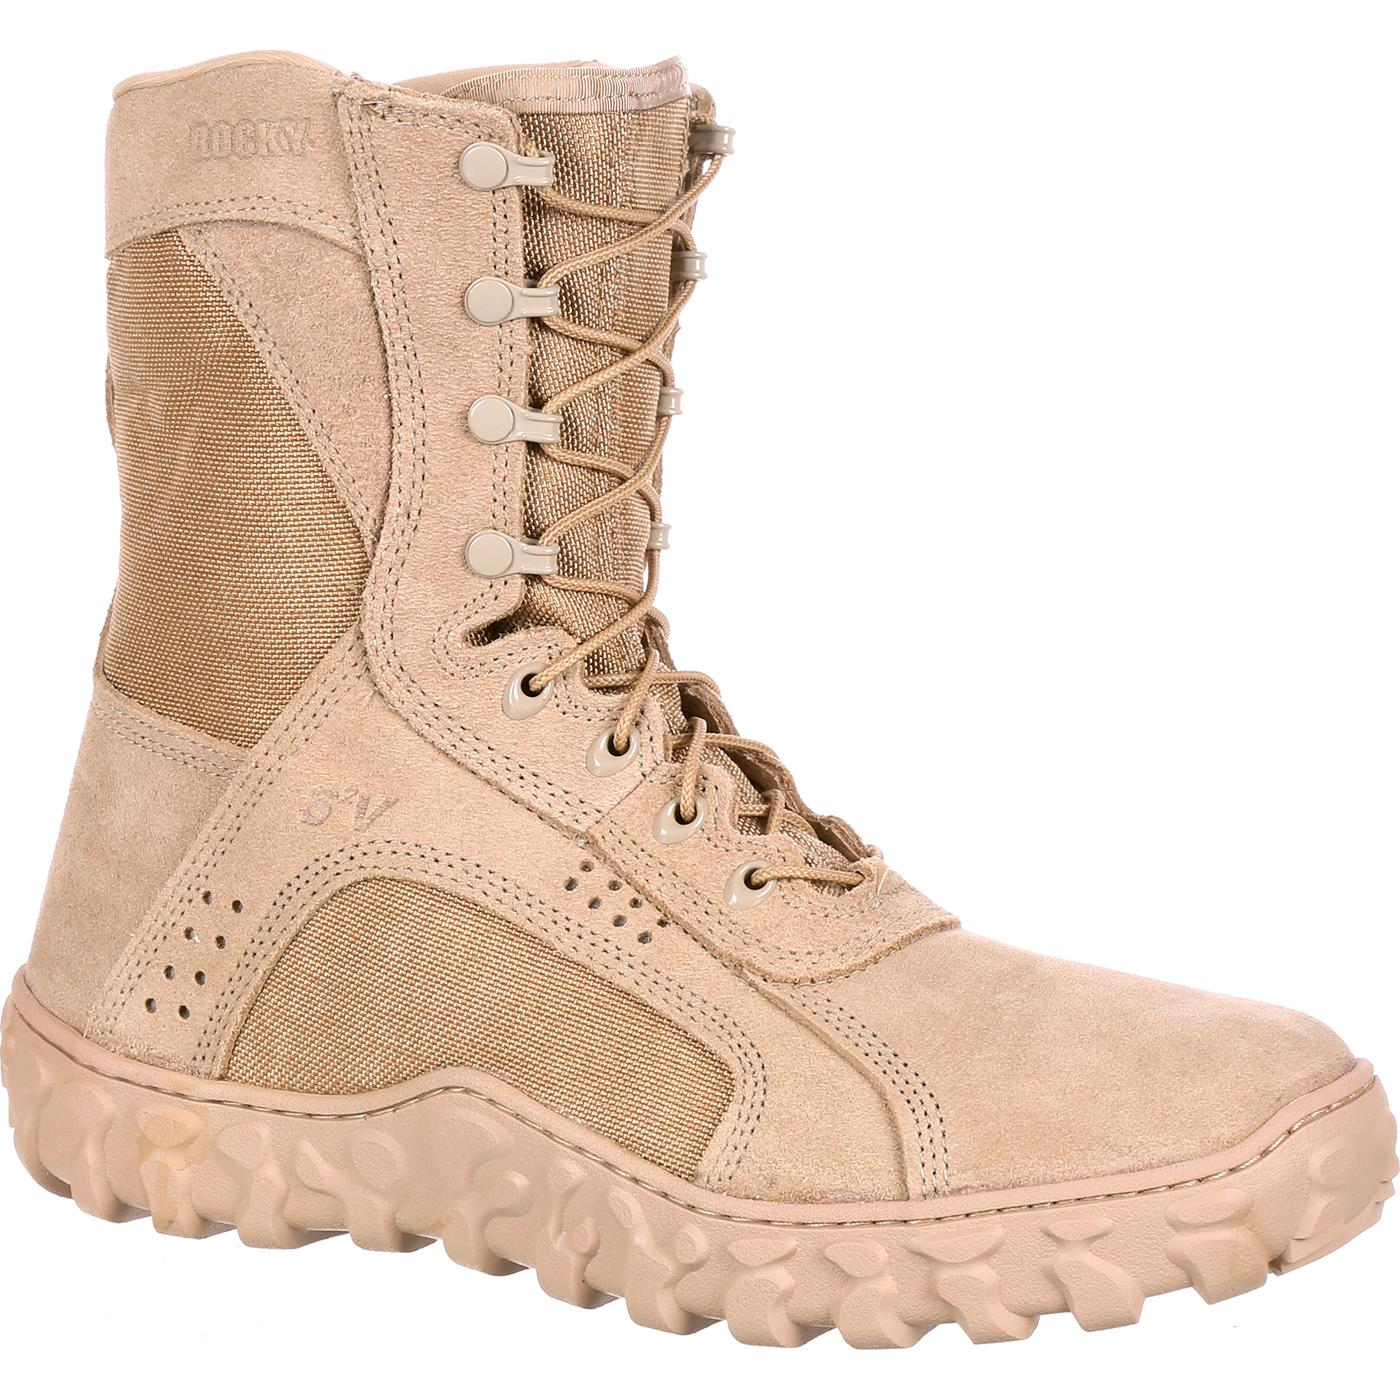 Rocky S2V Made in USA Tactical Military Boot FQ0000105